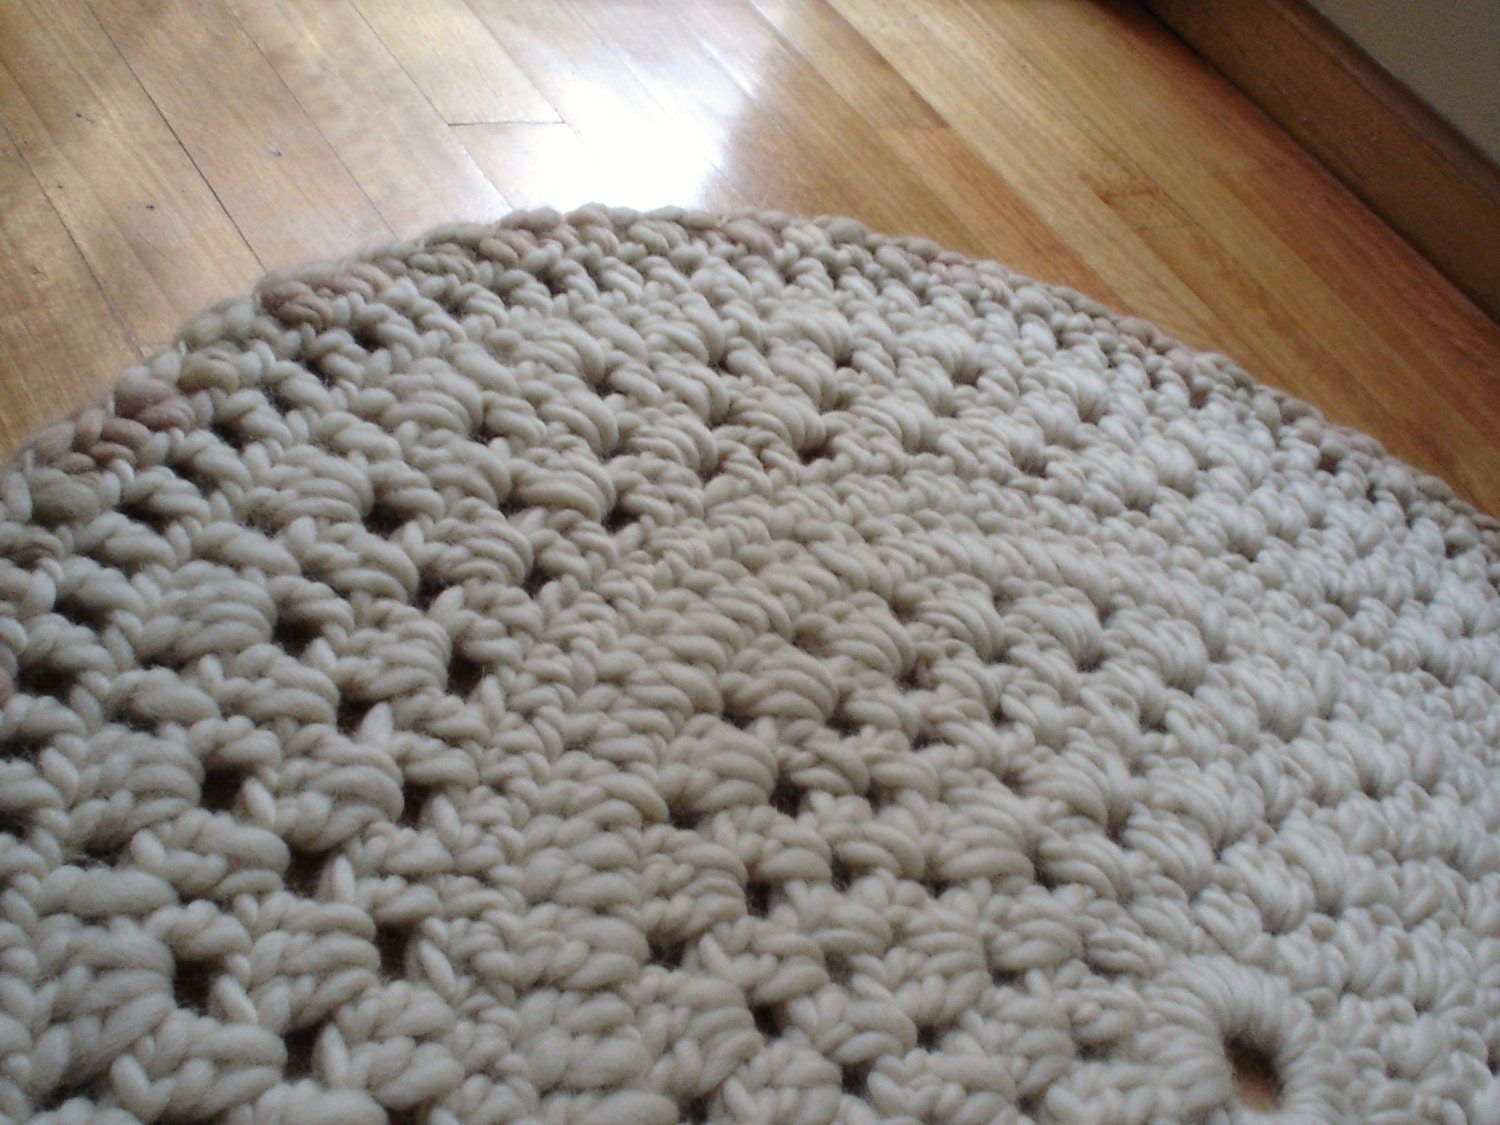 Crocheting Round Rugs : WOOL RUG Area Rug Crochet Rug Knit Rug Round Rug by LaParlavecchia